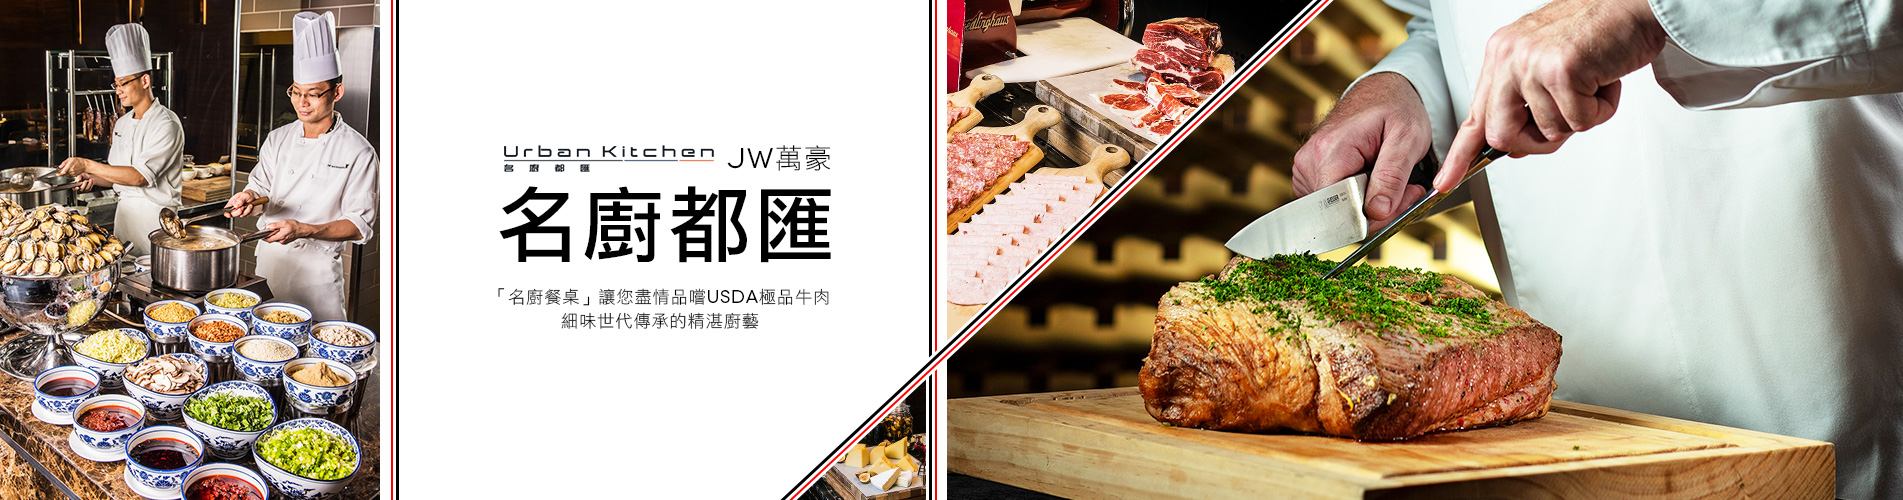 JW萬豪「名廚都匯」自助餐 JW Marriott Urban Kitchen Buffet